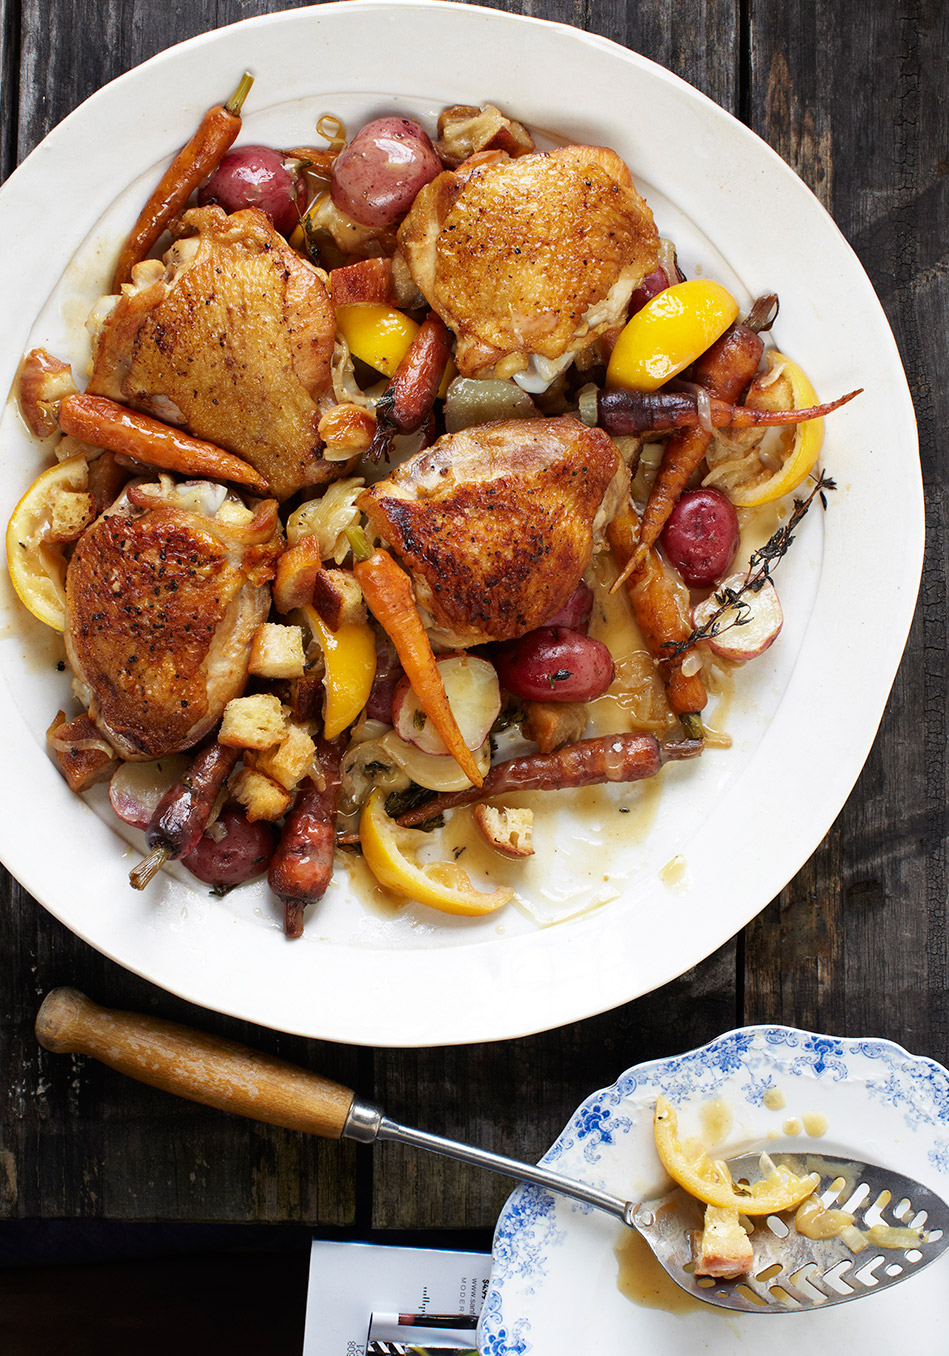 Lemon-Scented Chicken Thighs with Crispy Croutons and Carrots